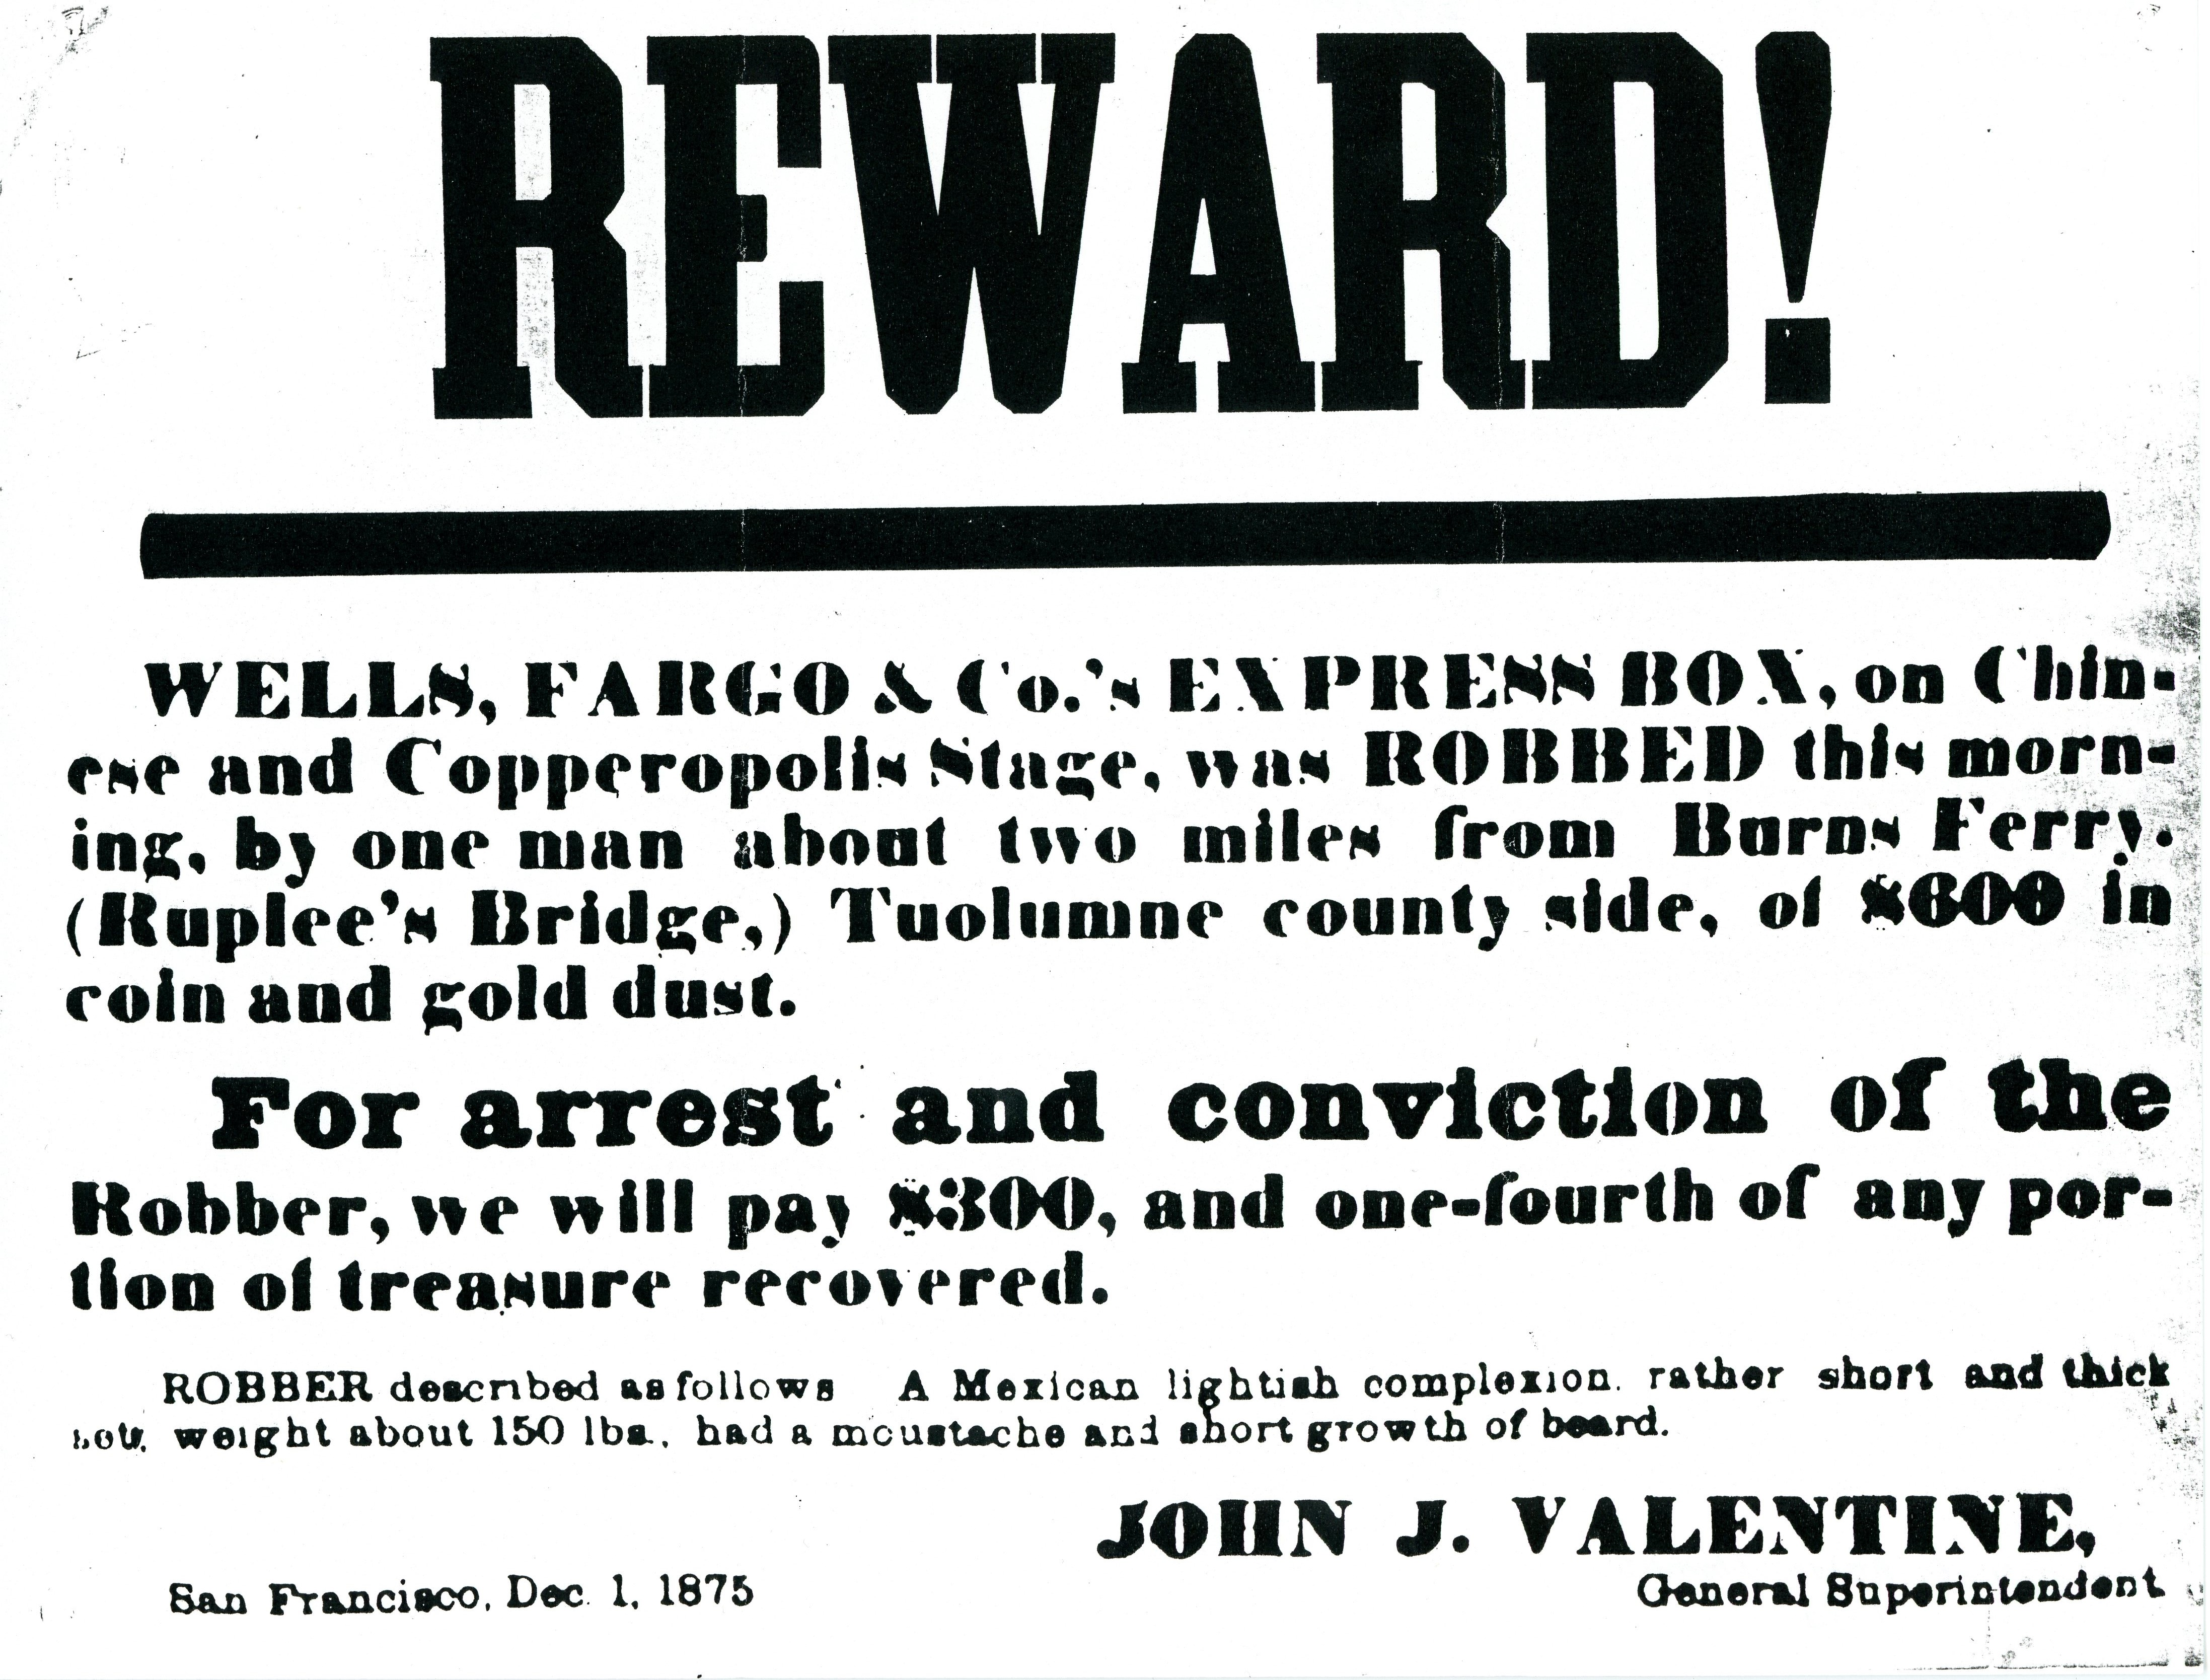 An 1875 broadside promises a handsome reward for the arrest of a train robber